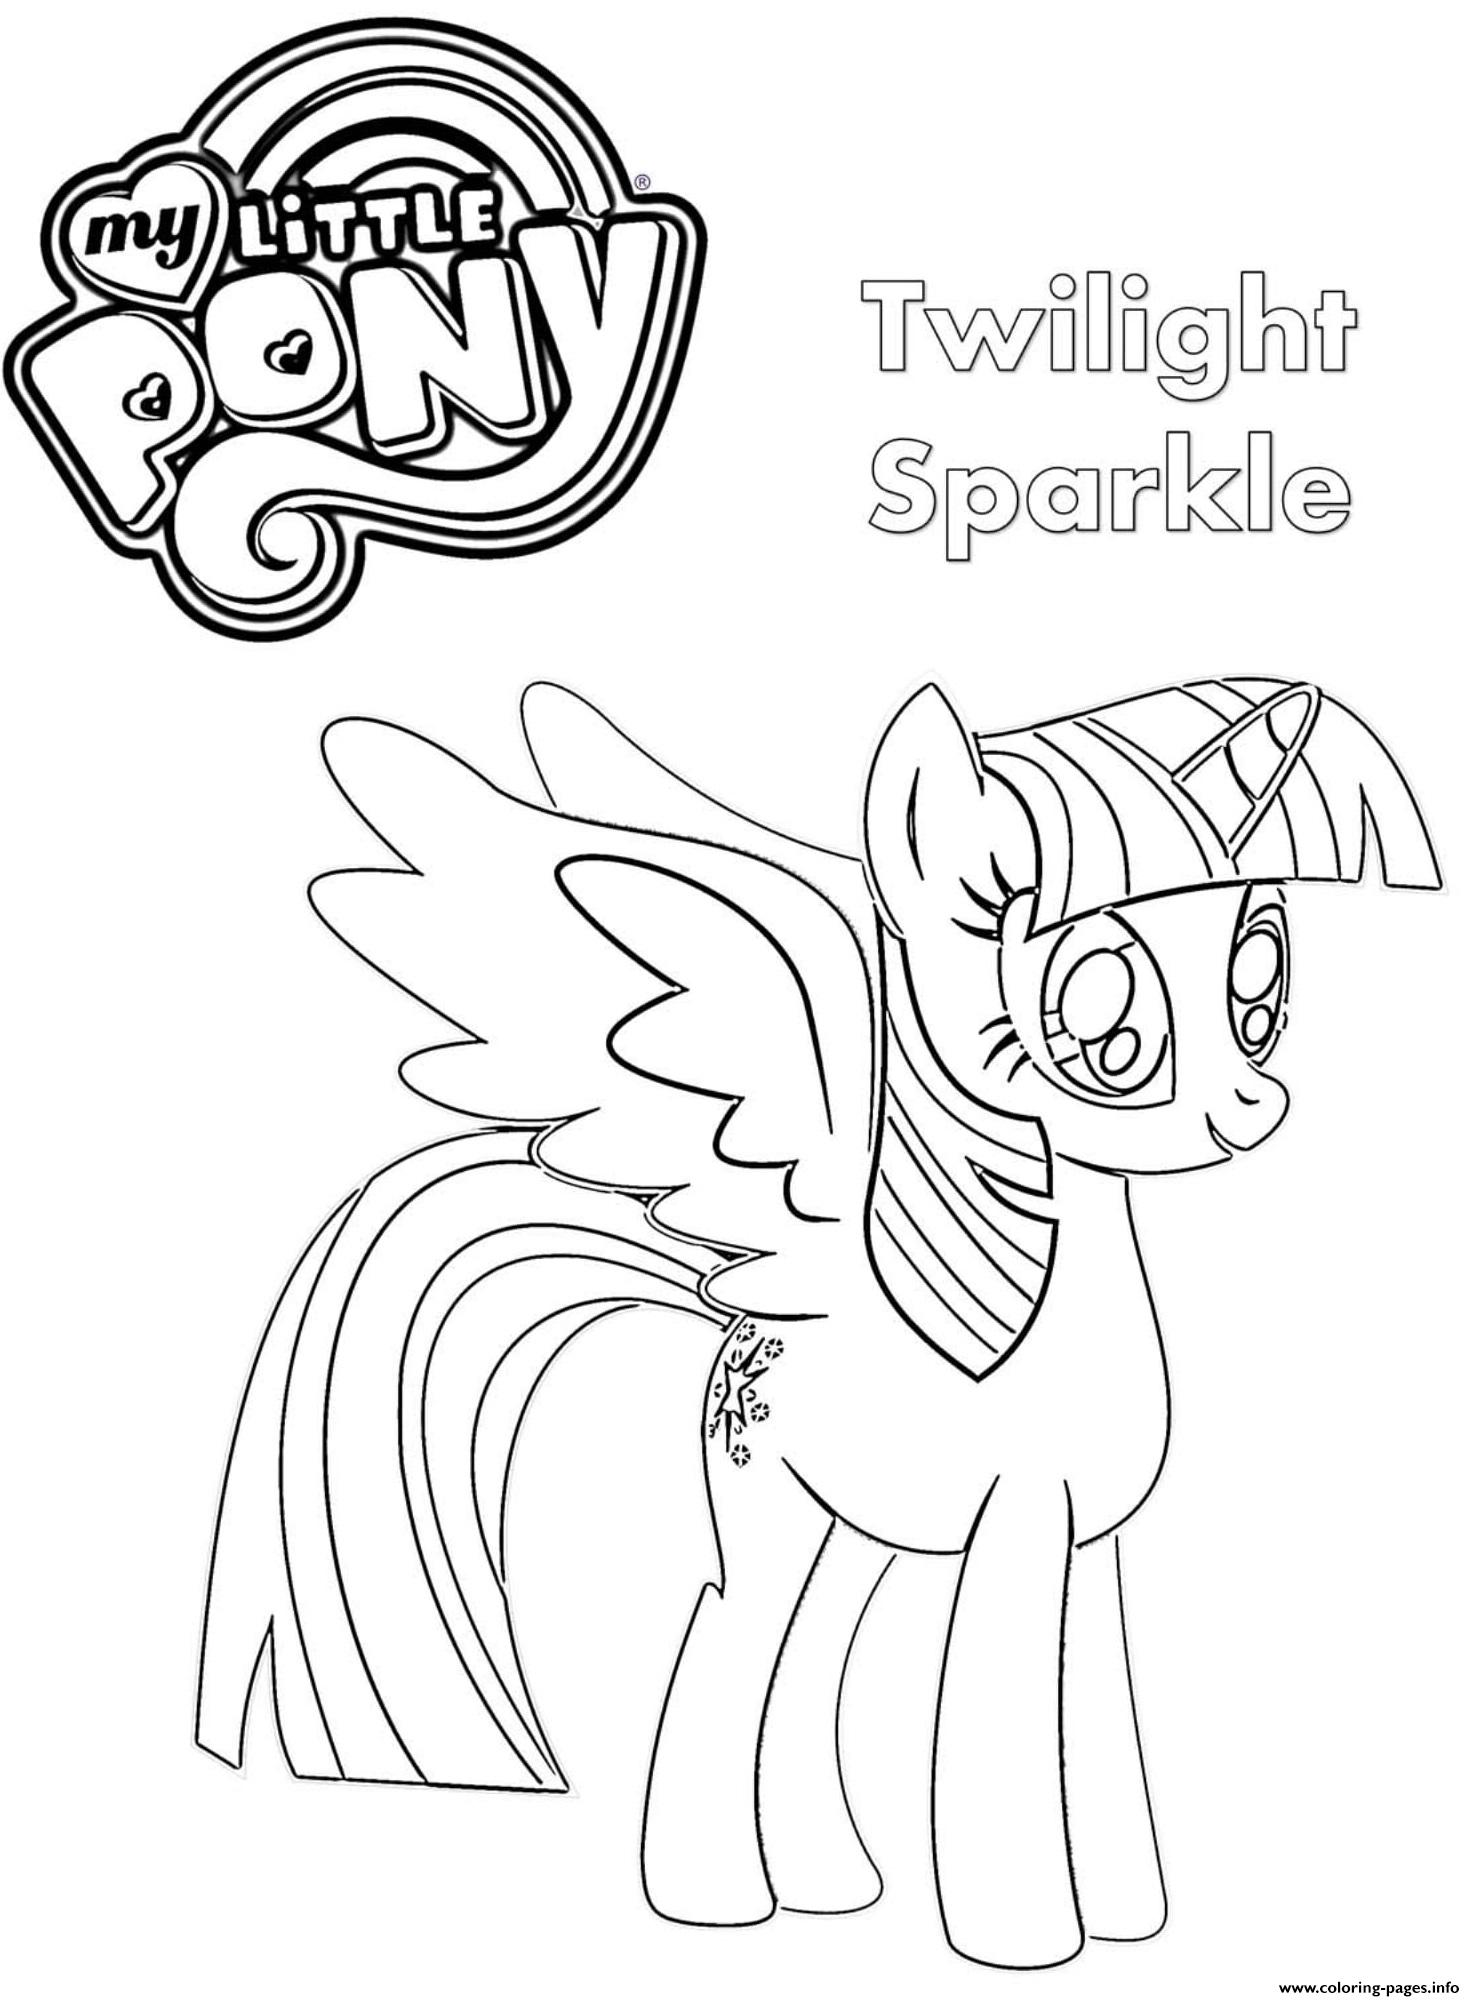 Coloring Twilight Sparkle